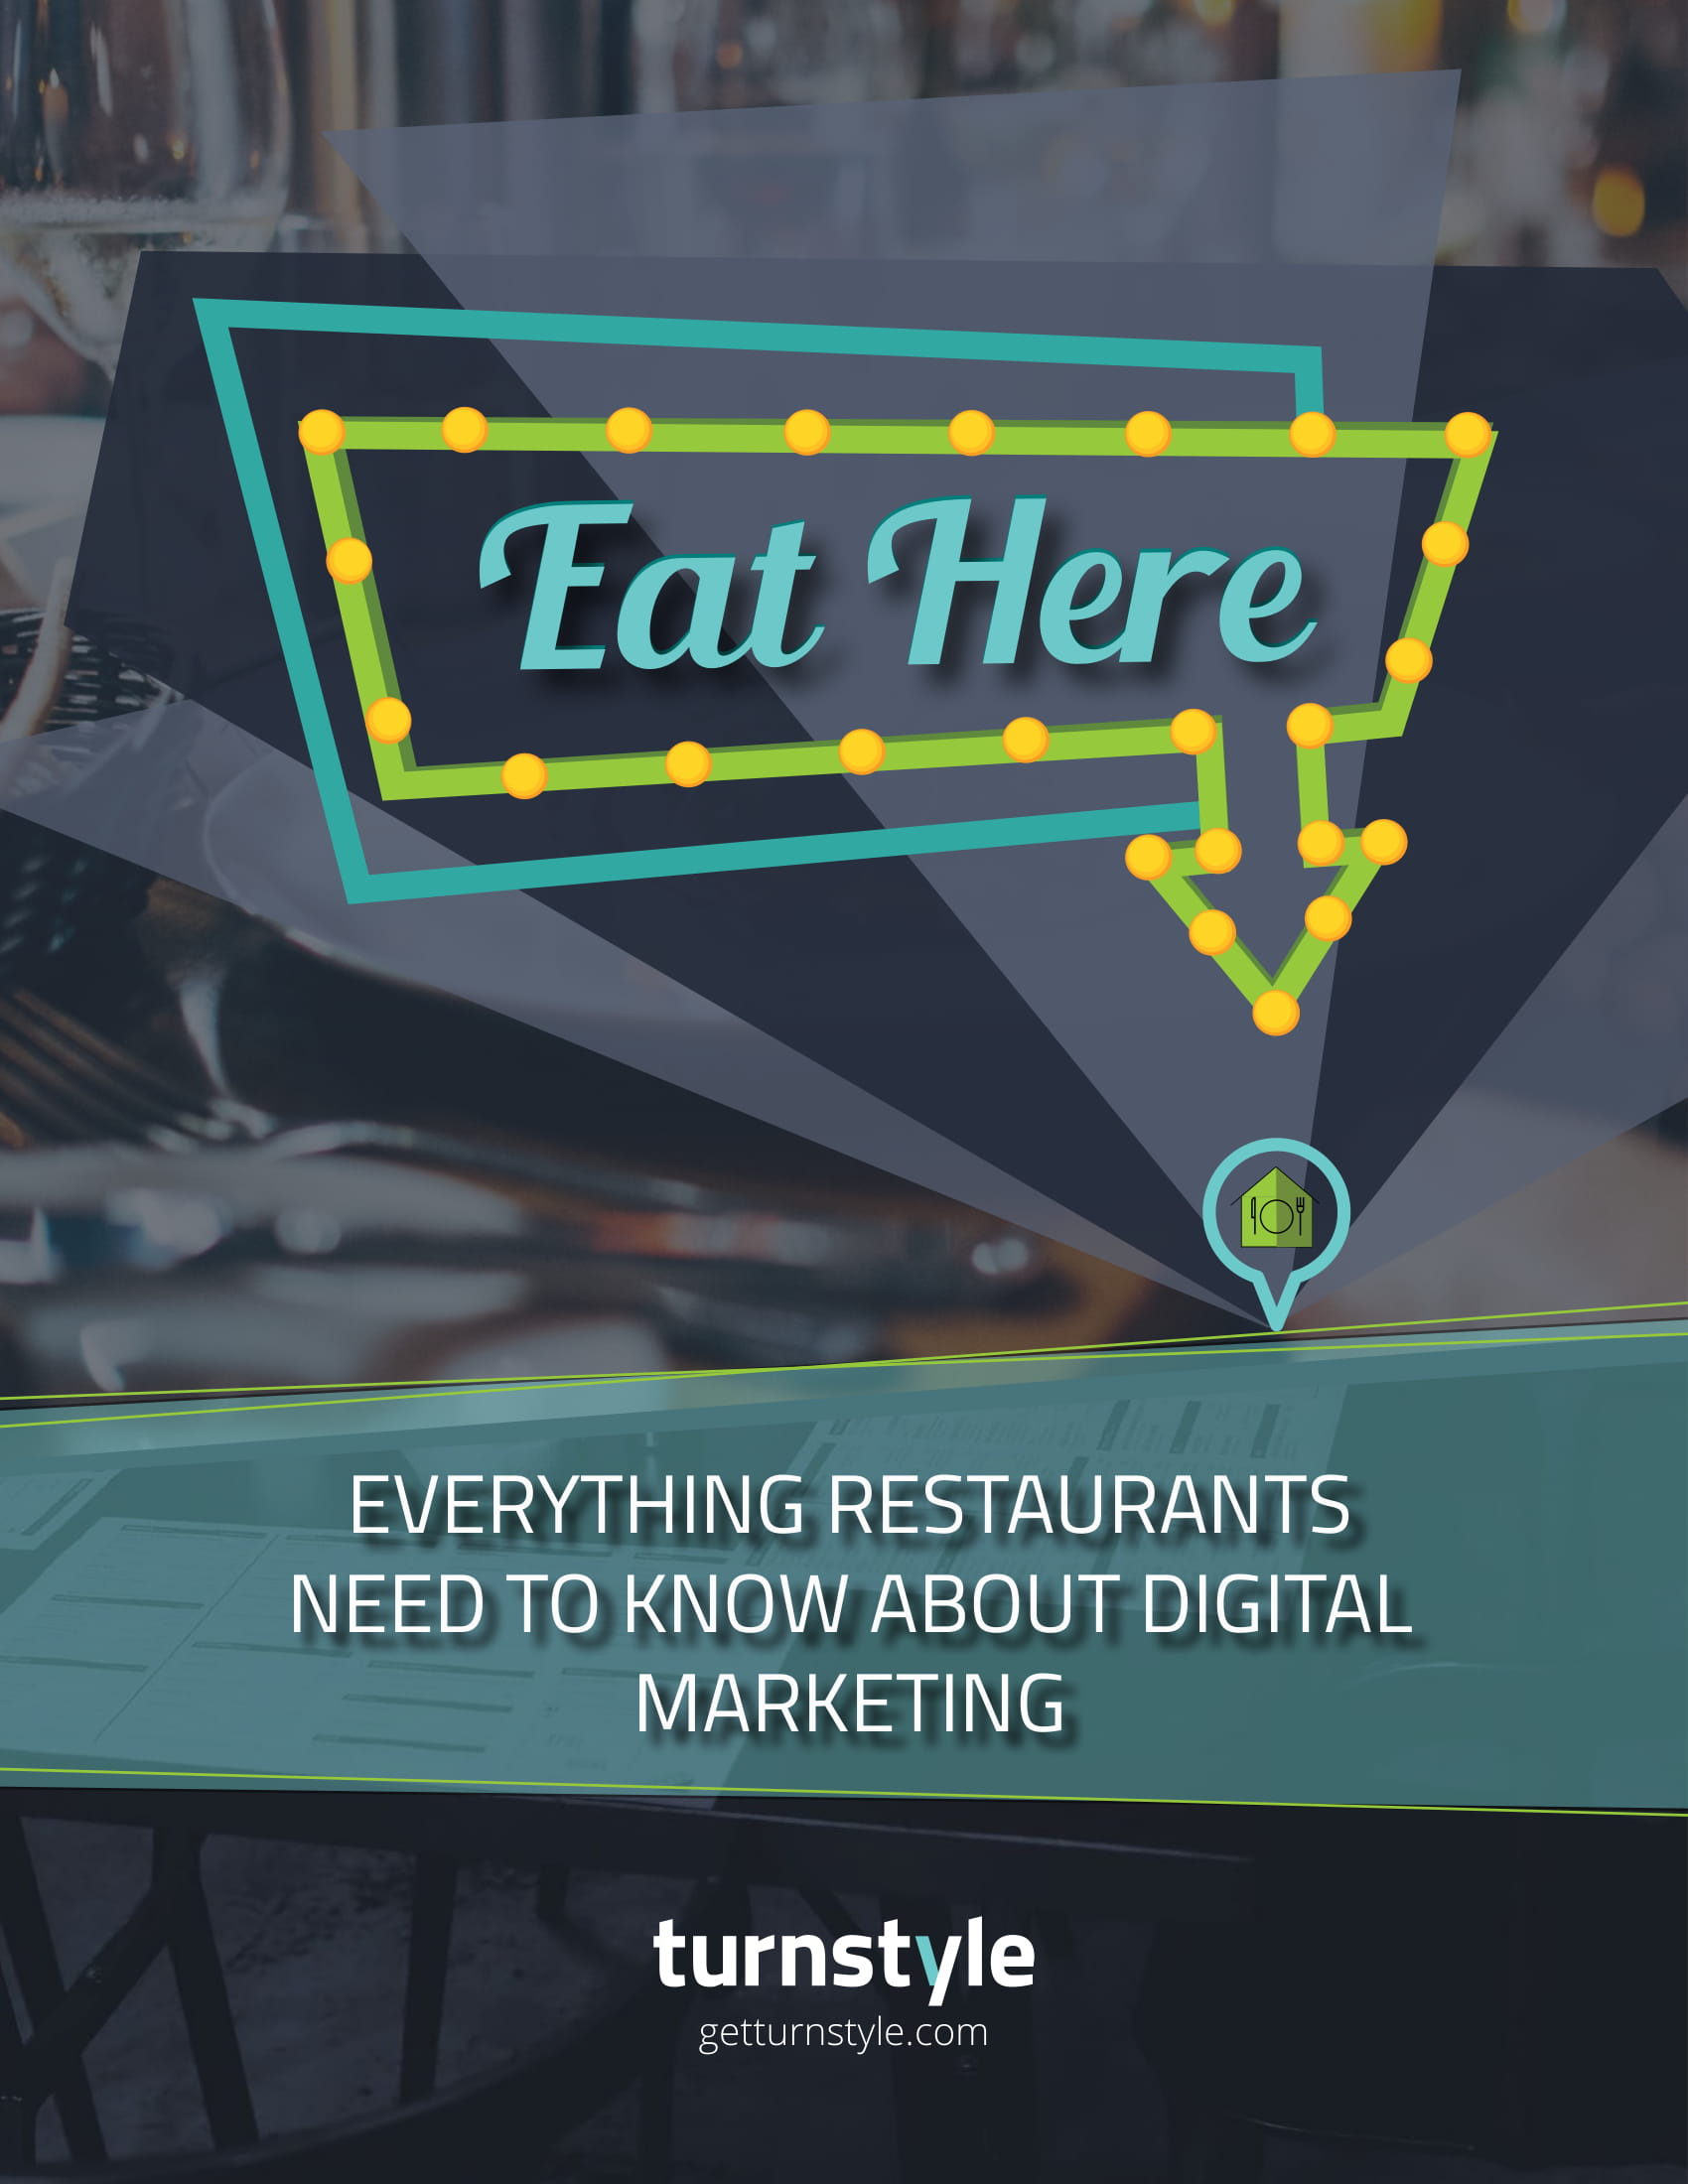 digital and social media marketing proposal for restaurant businesses example 01